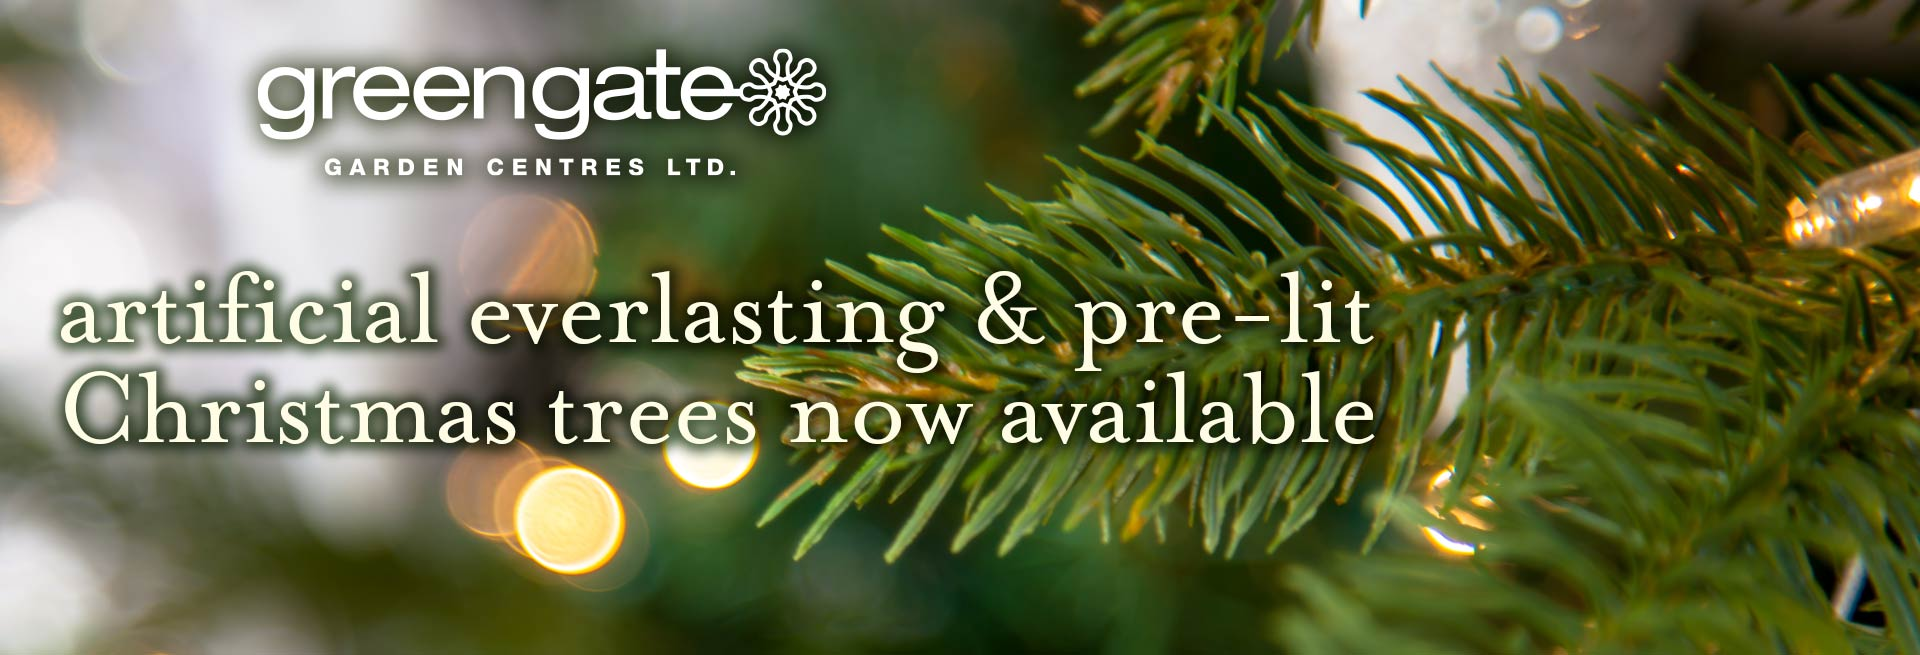 Artificial Christmas trees at greengate